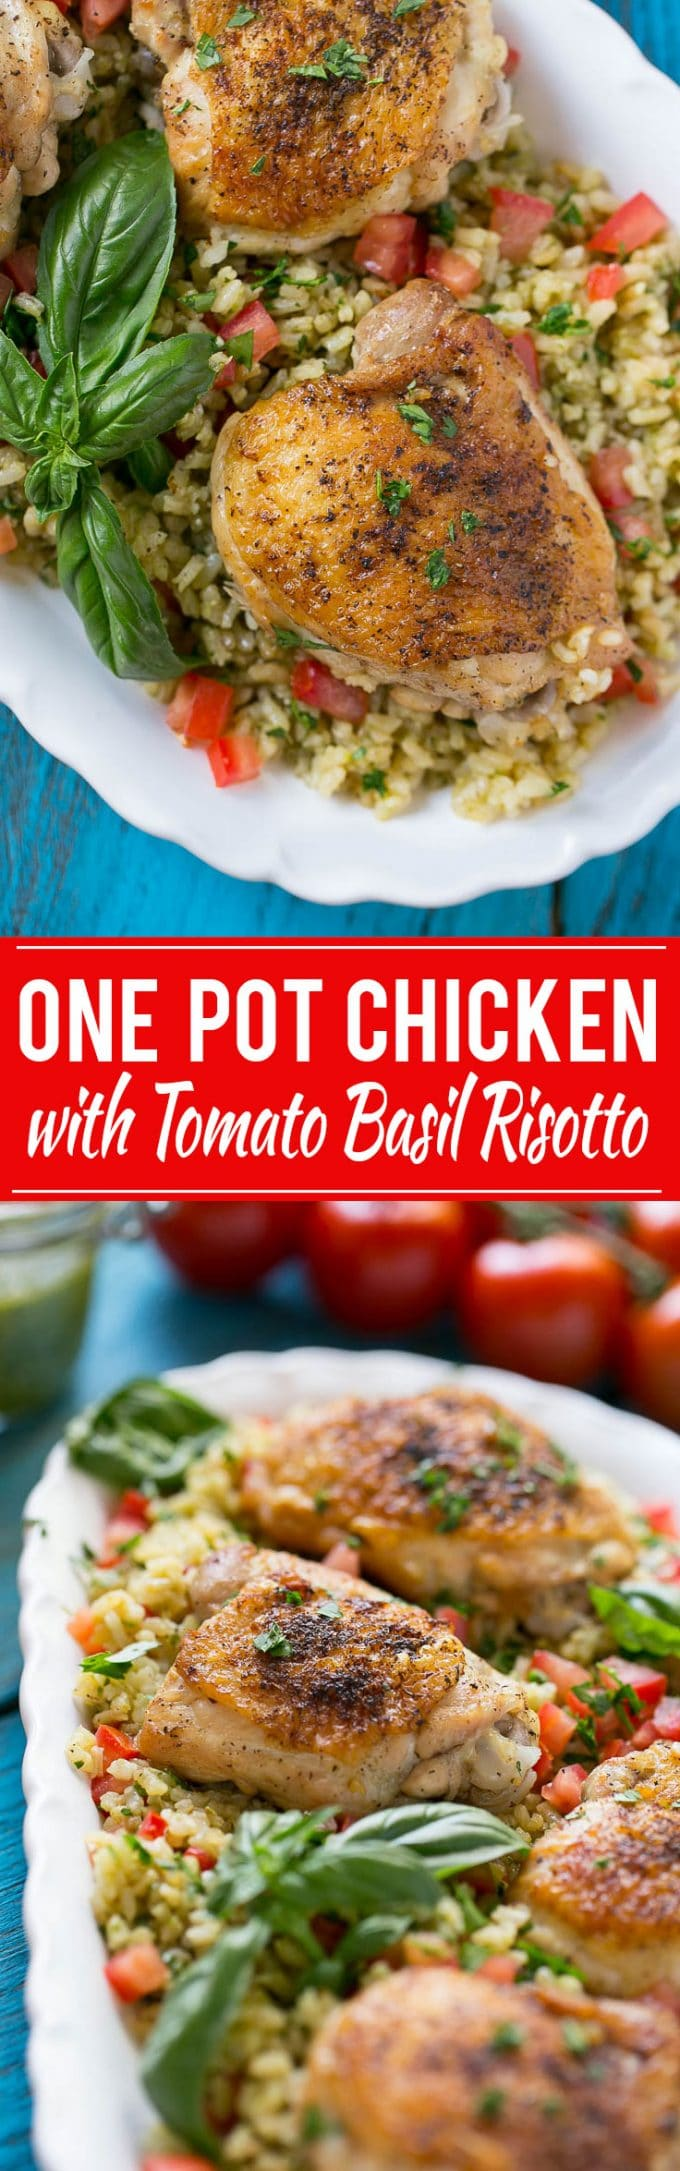 One Pot Chicken with Tomato Basil Risotto Recipe | One Pot Chicken and Risotto | Tomato Risotto | One Pot Chicken Risotto